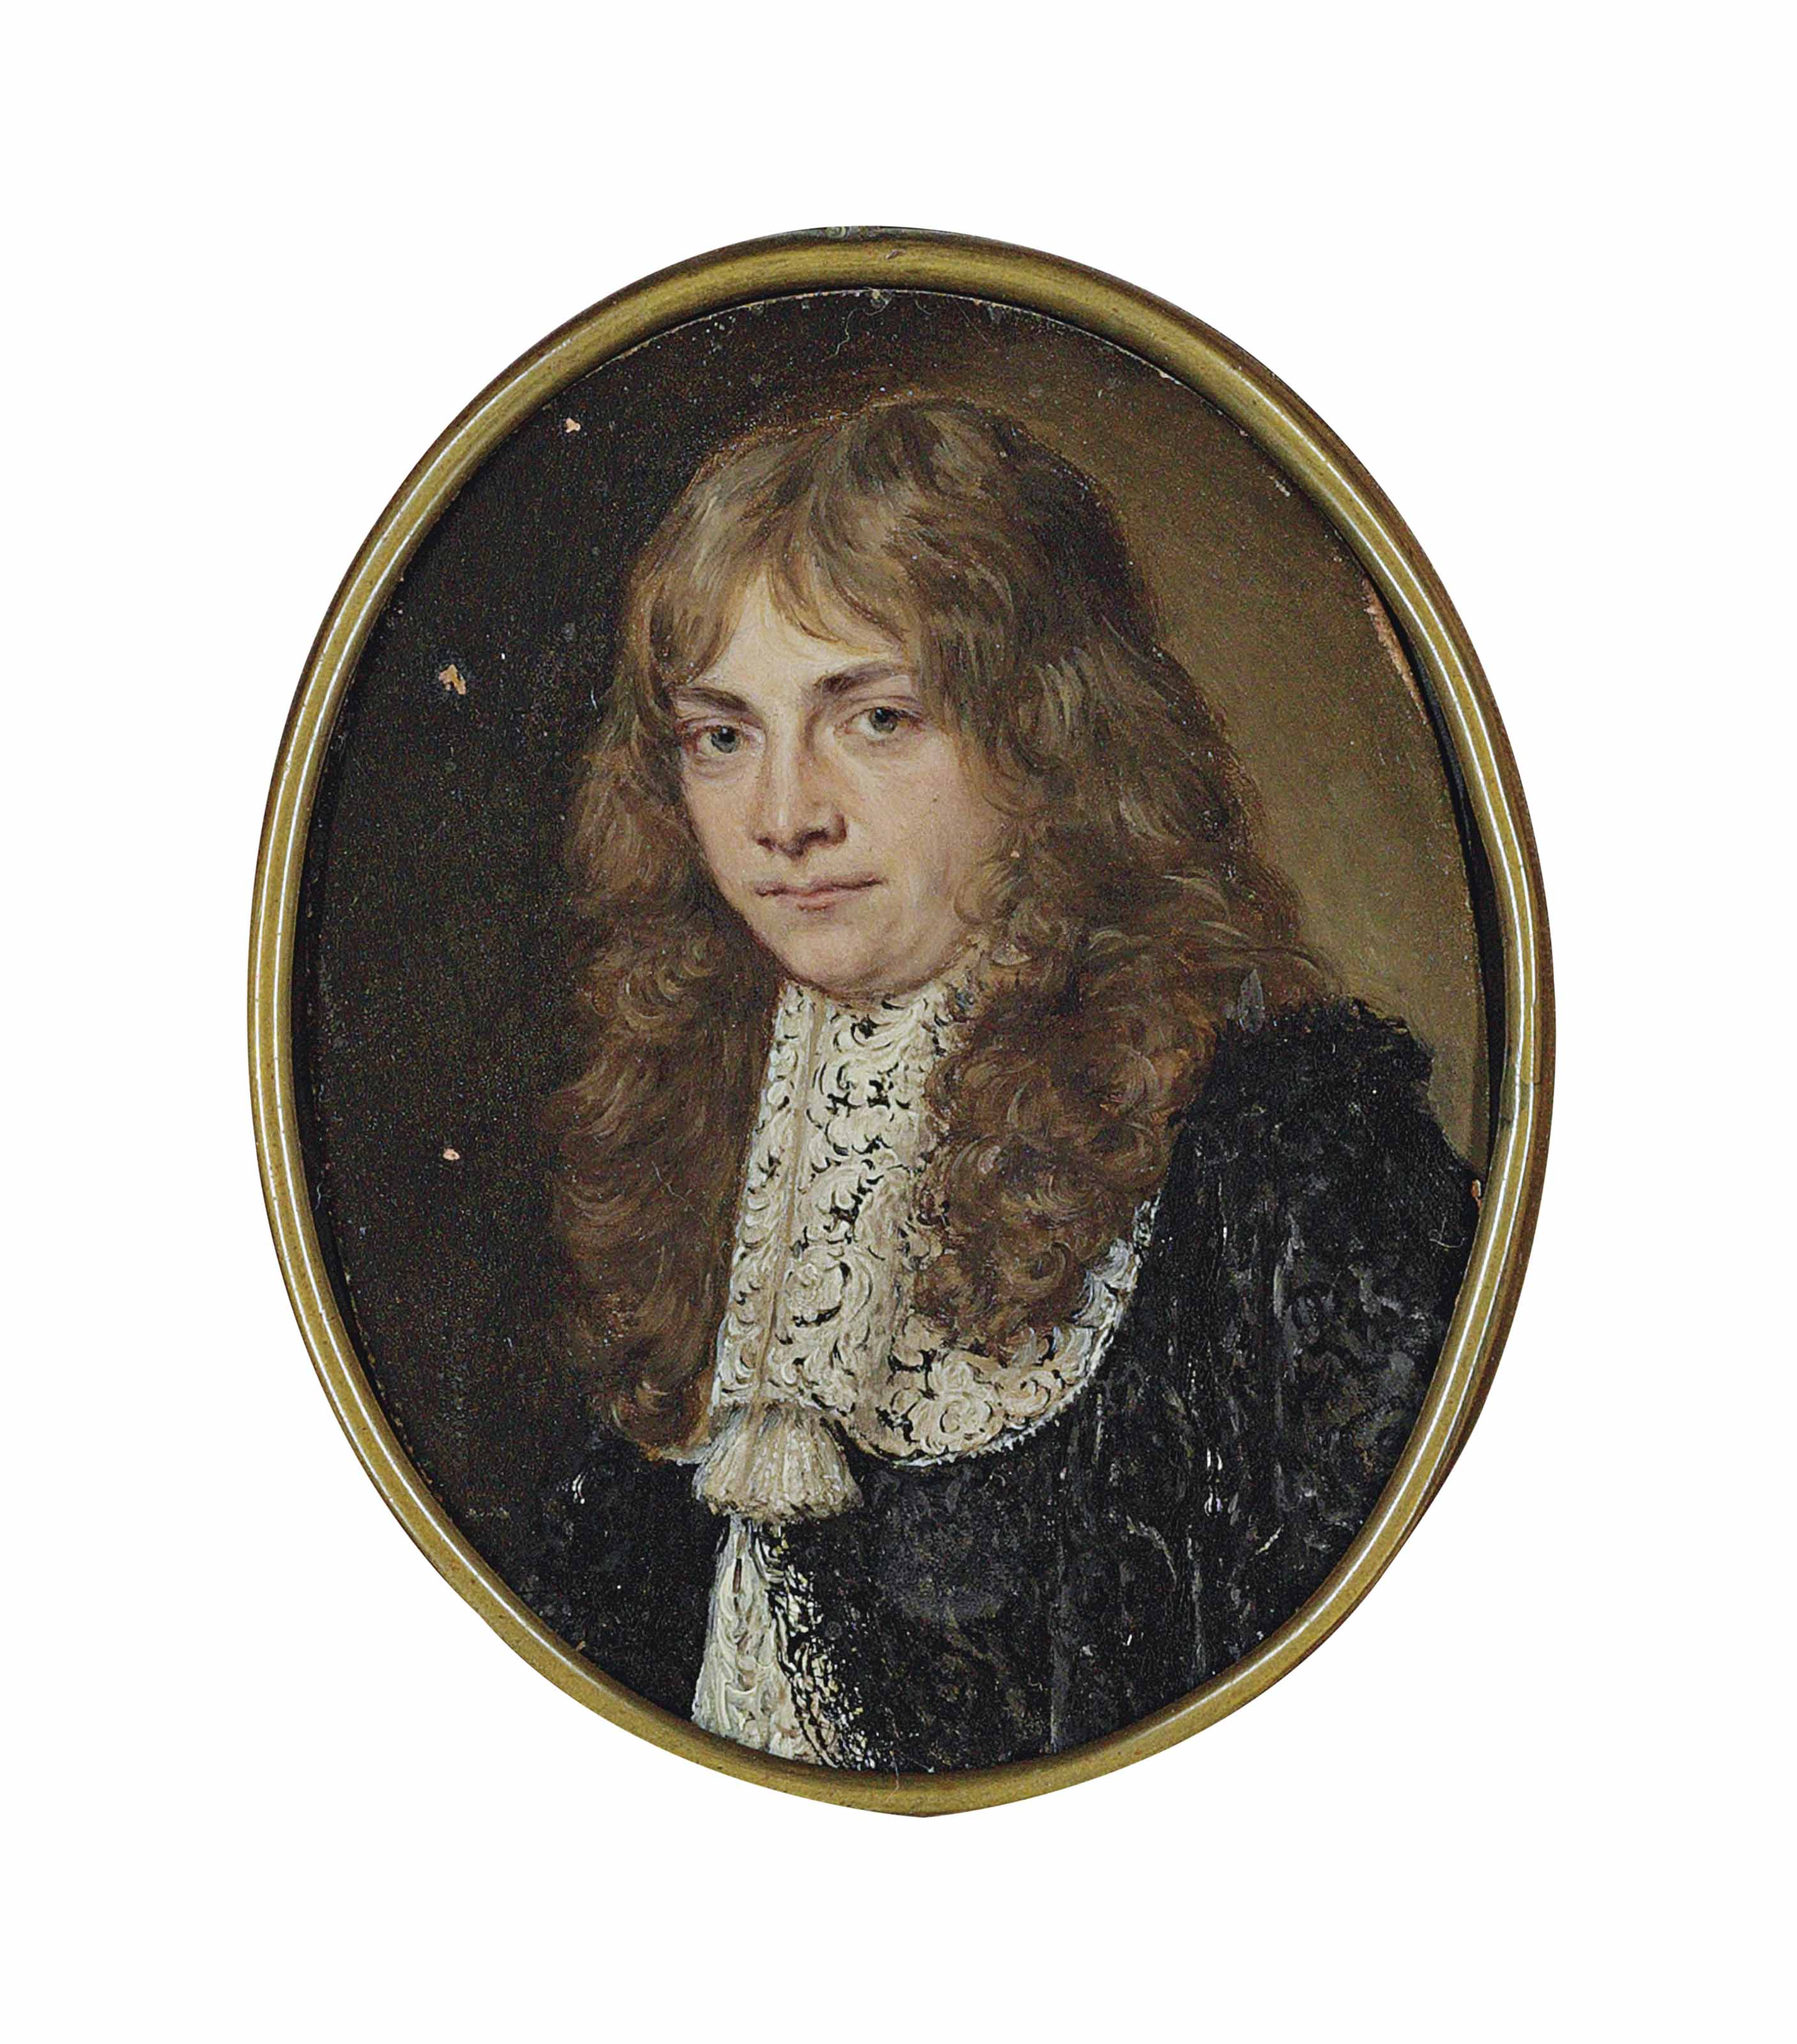 Portrait of a man, half-length, in a black embroidered jacket at lace collar